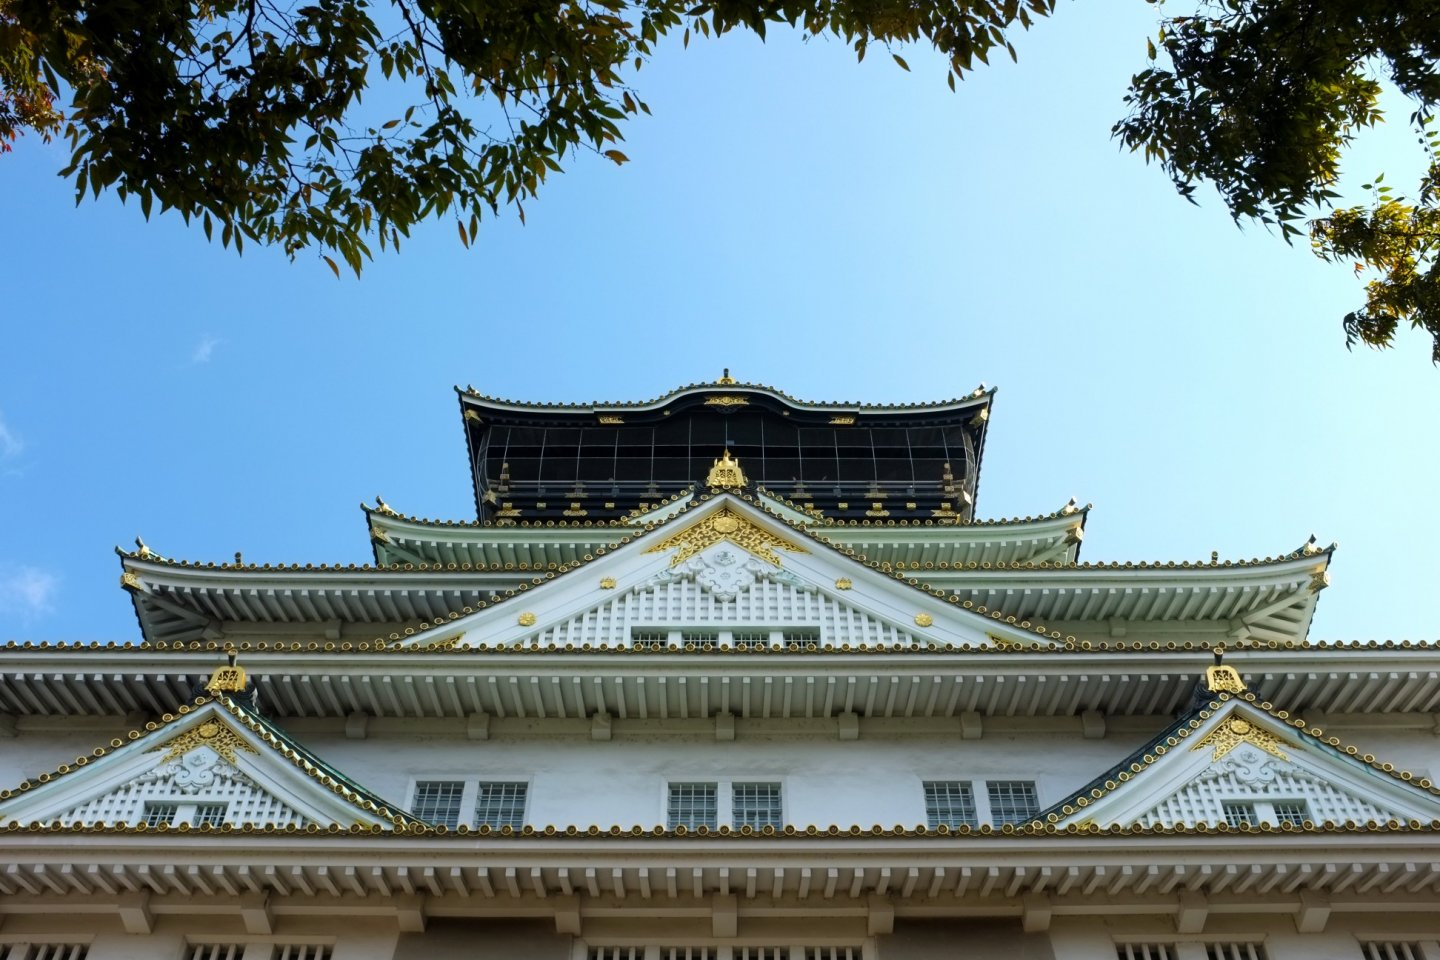 Osaka Castle. Such a tall and beautiful landmark.